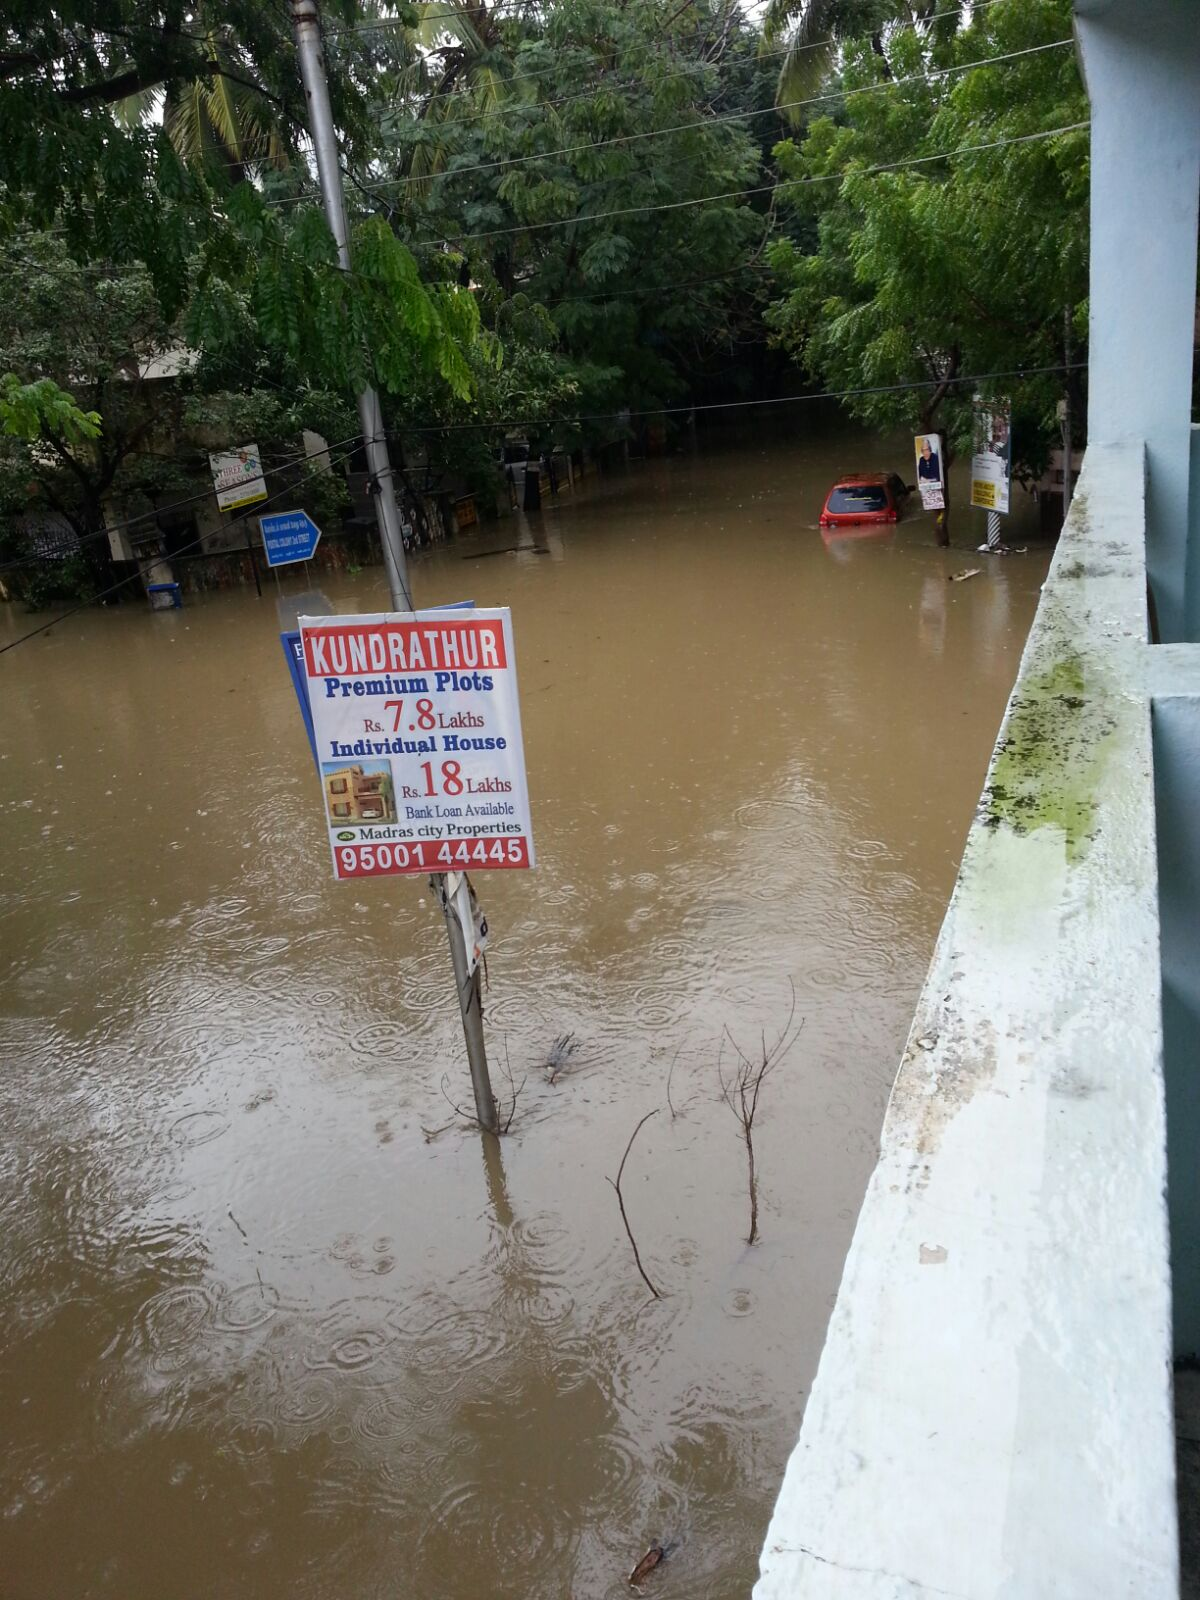 sandhya s blog chennai floods when essay topics became reality not just kundrathur plots advertised even the city was so